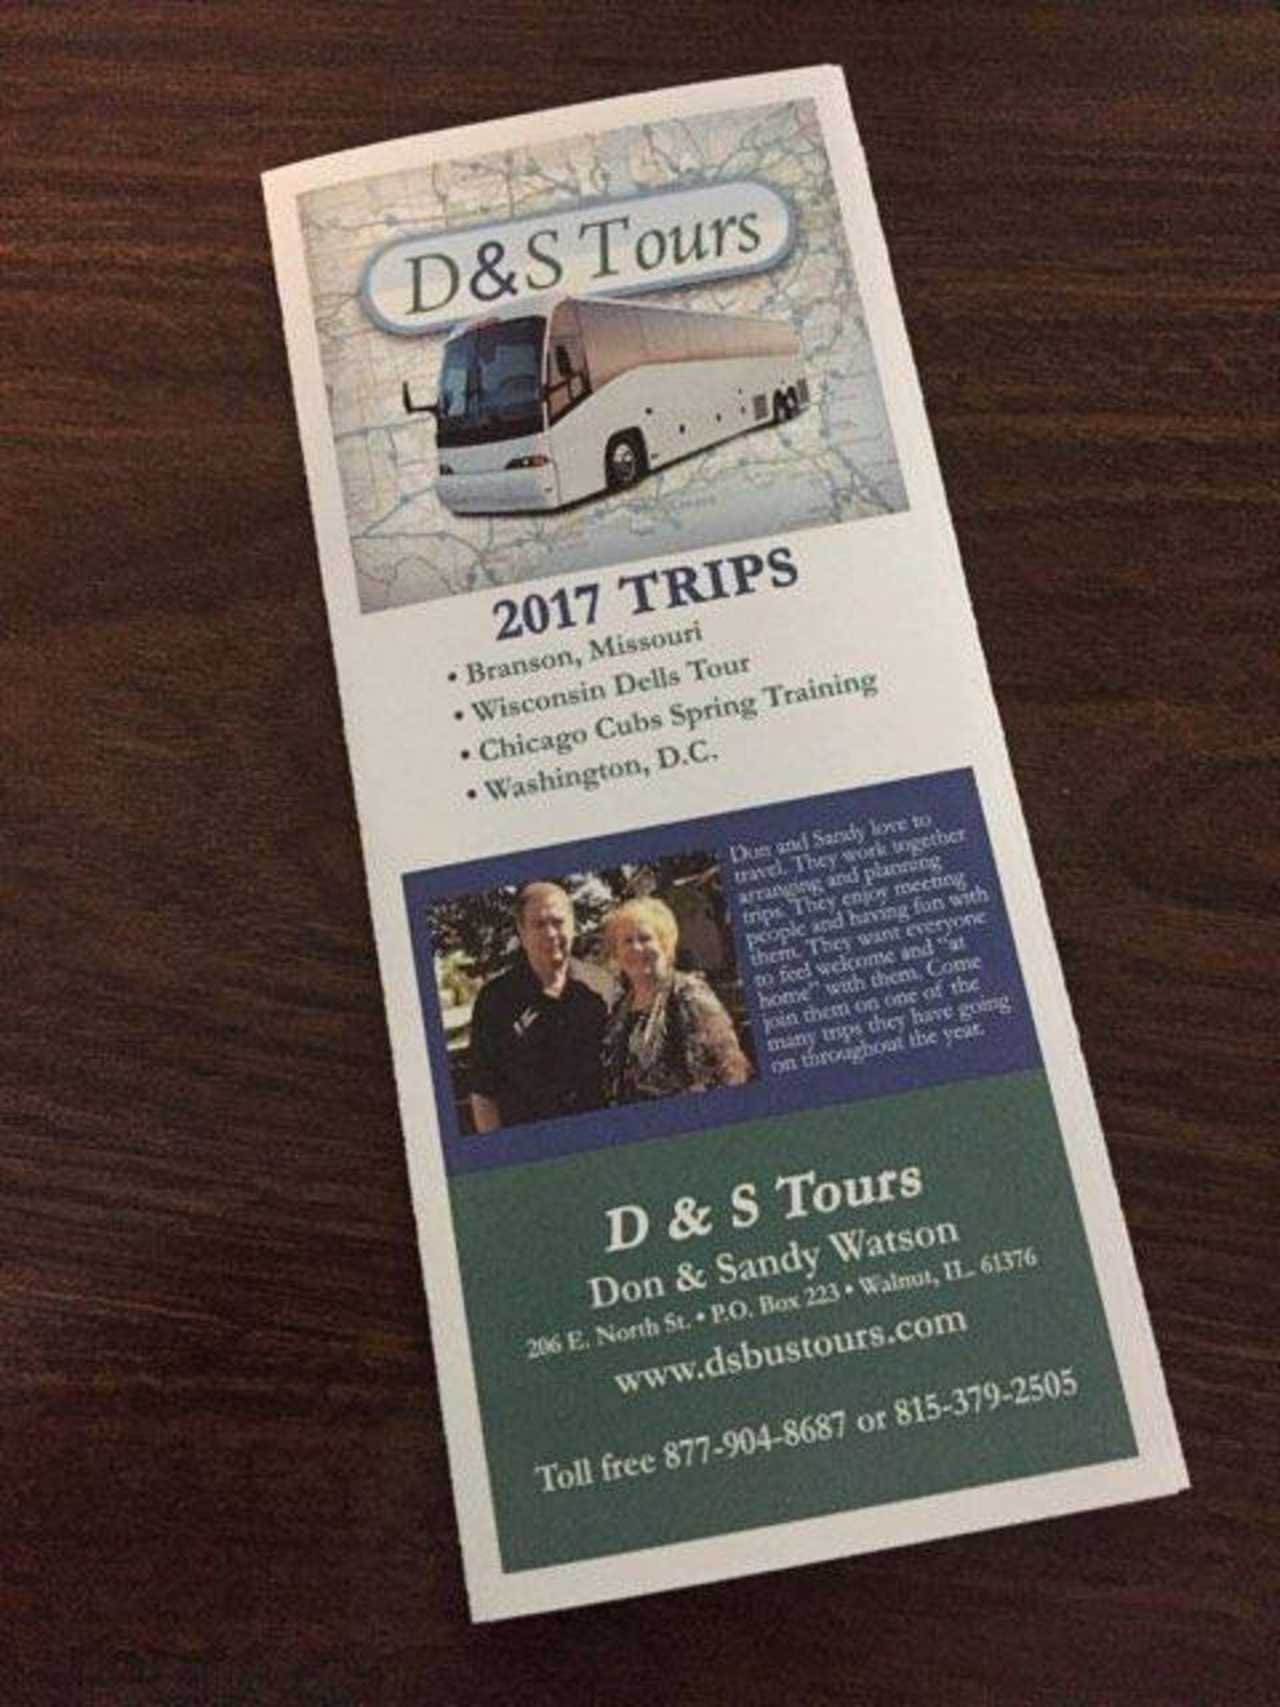 D&S Tours - Travel - Travel Tours in Walnut IL